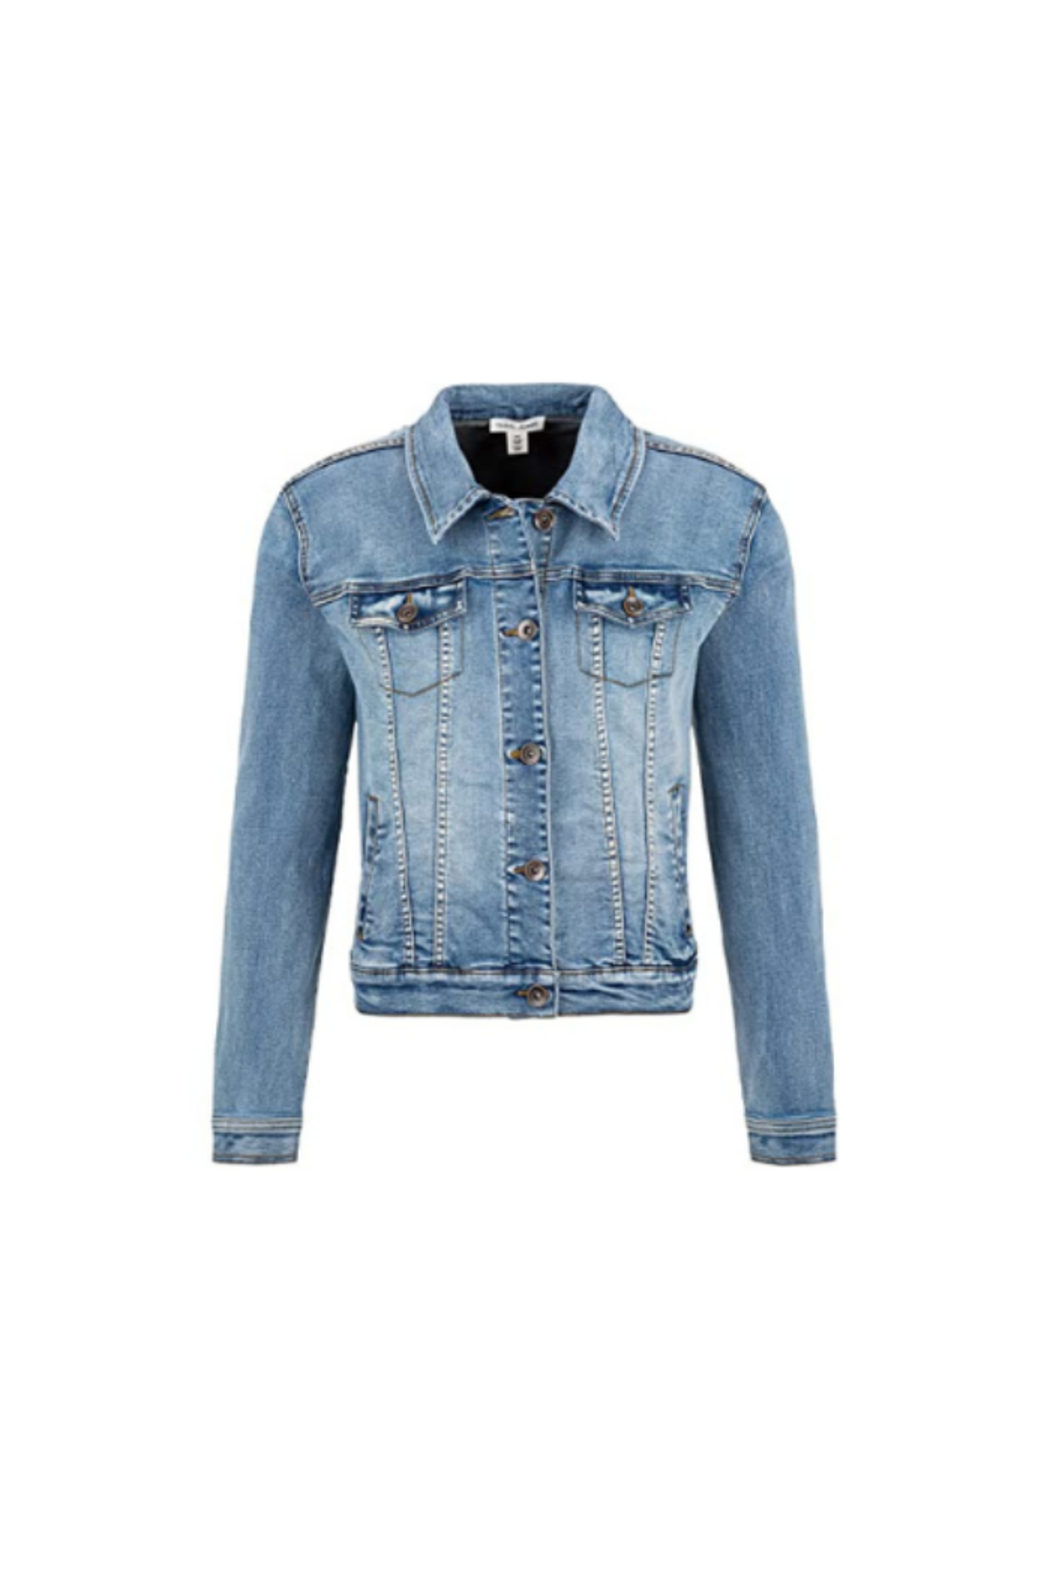 Tribal  JEAN JKT W/ REMOVABLE COLLAR - Front Full Image